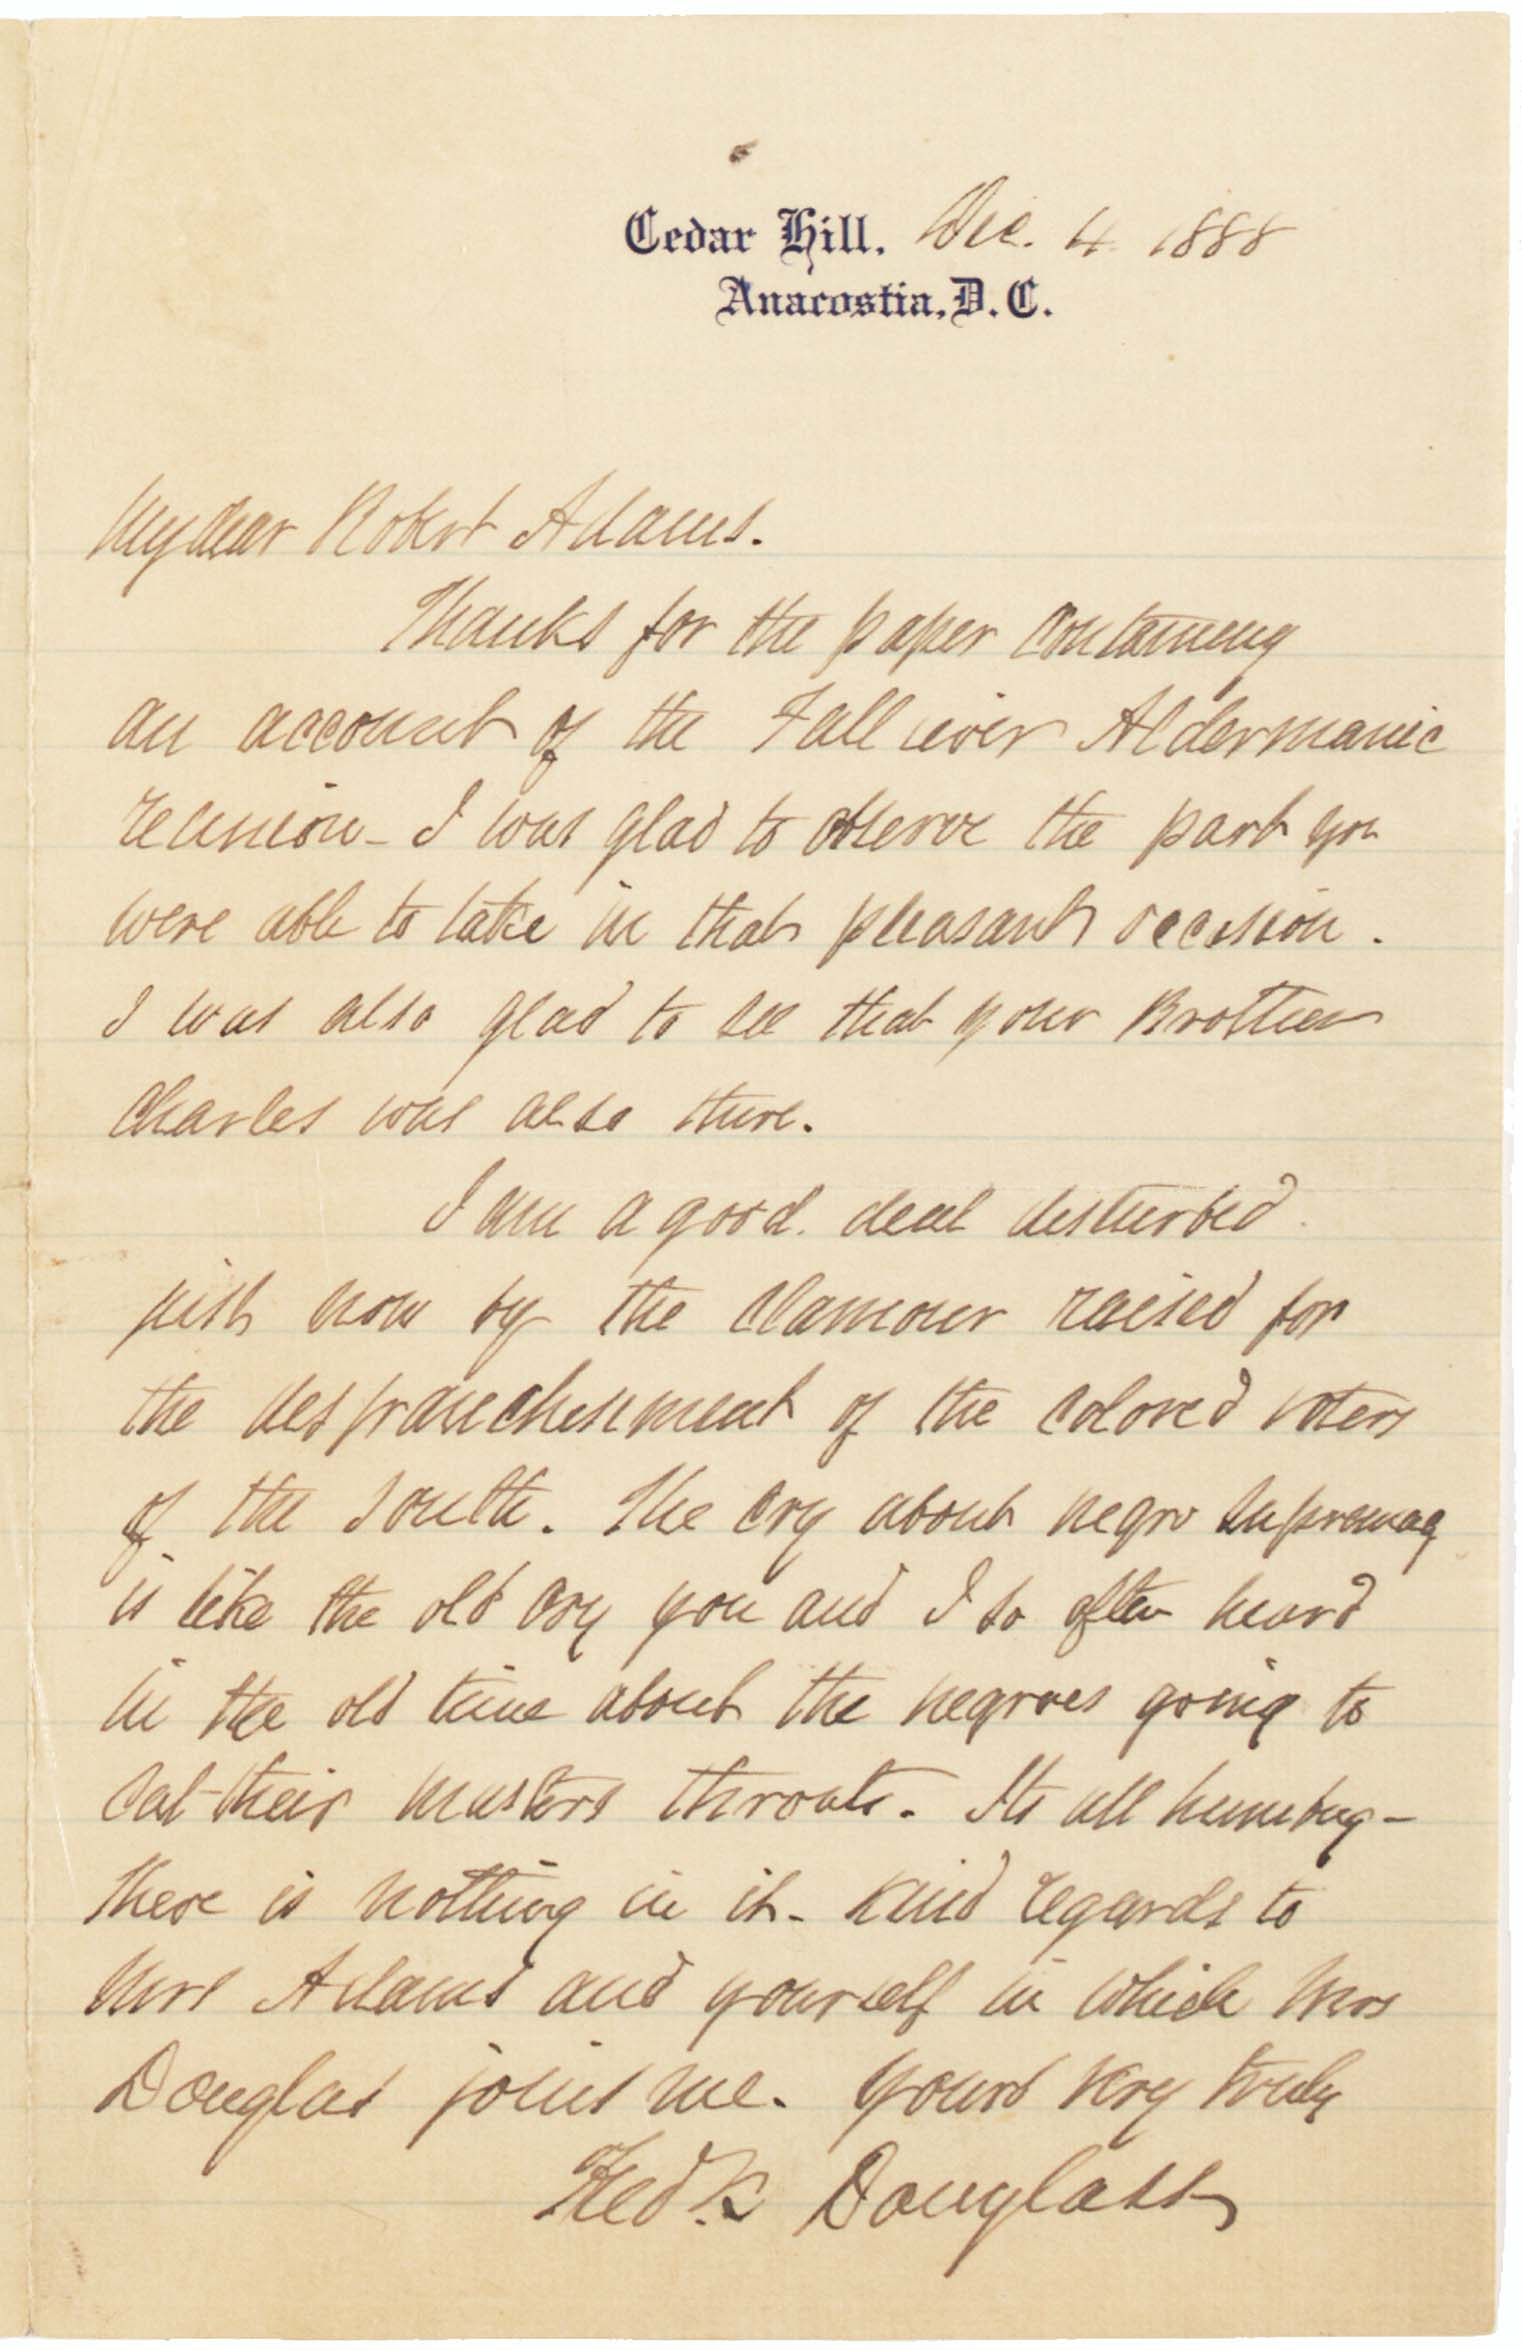 Frederick Douglass to Robert Adams, December 4, 1888. (Gilder Lehrman Collection